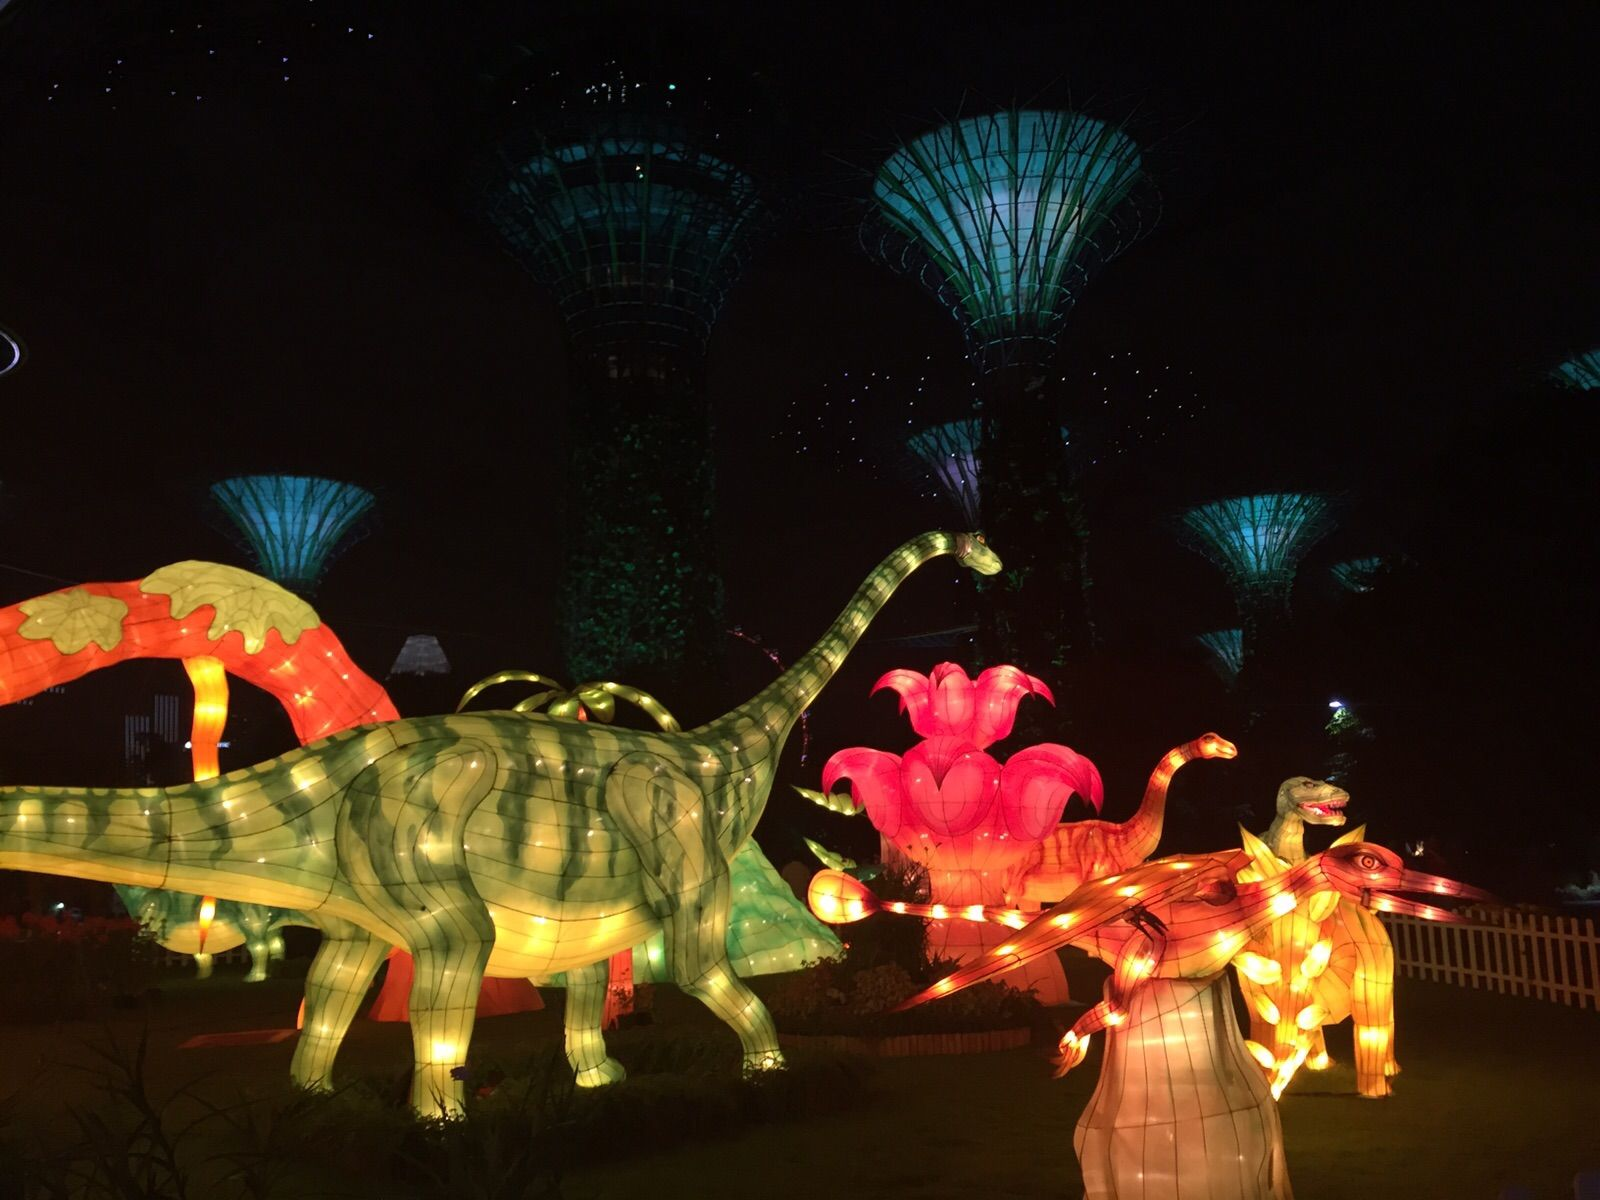 300 lanterns on display at gardens by the bay for mid autumn festival channel